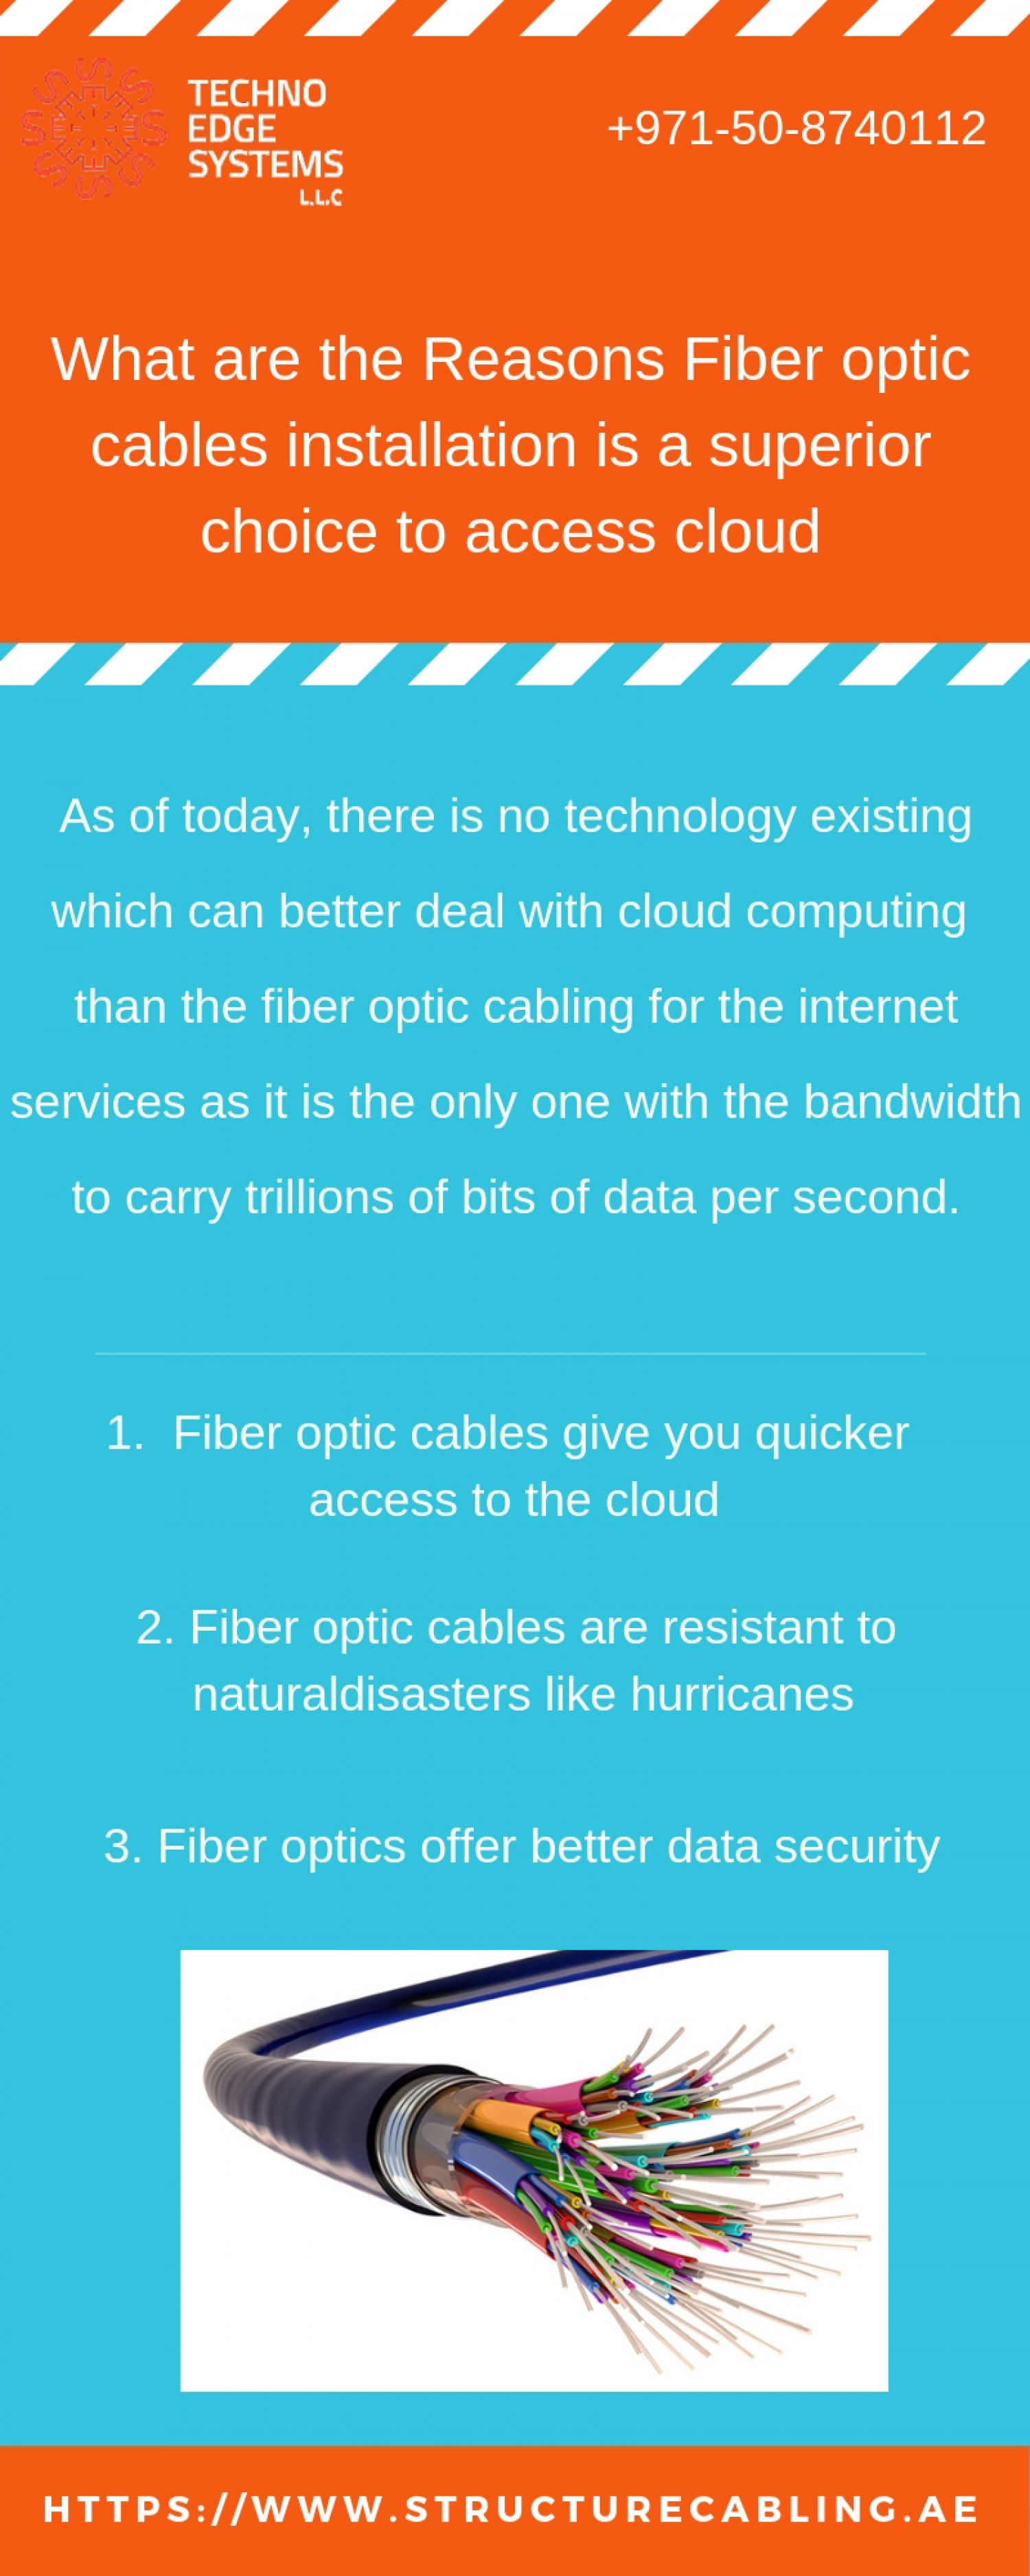 What are the Reasons Fiber optic cables installation is a superior choice to access cloud? Infographic